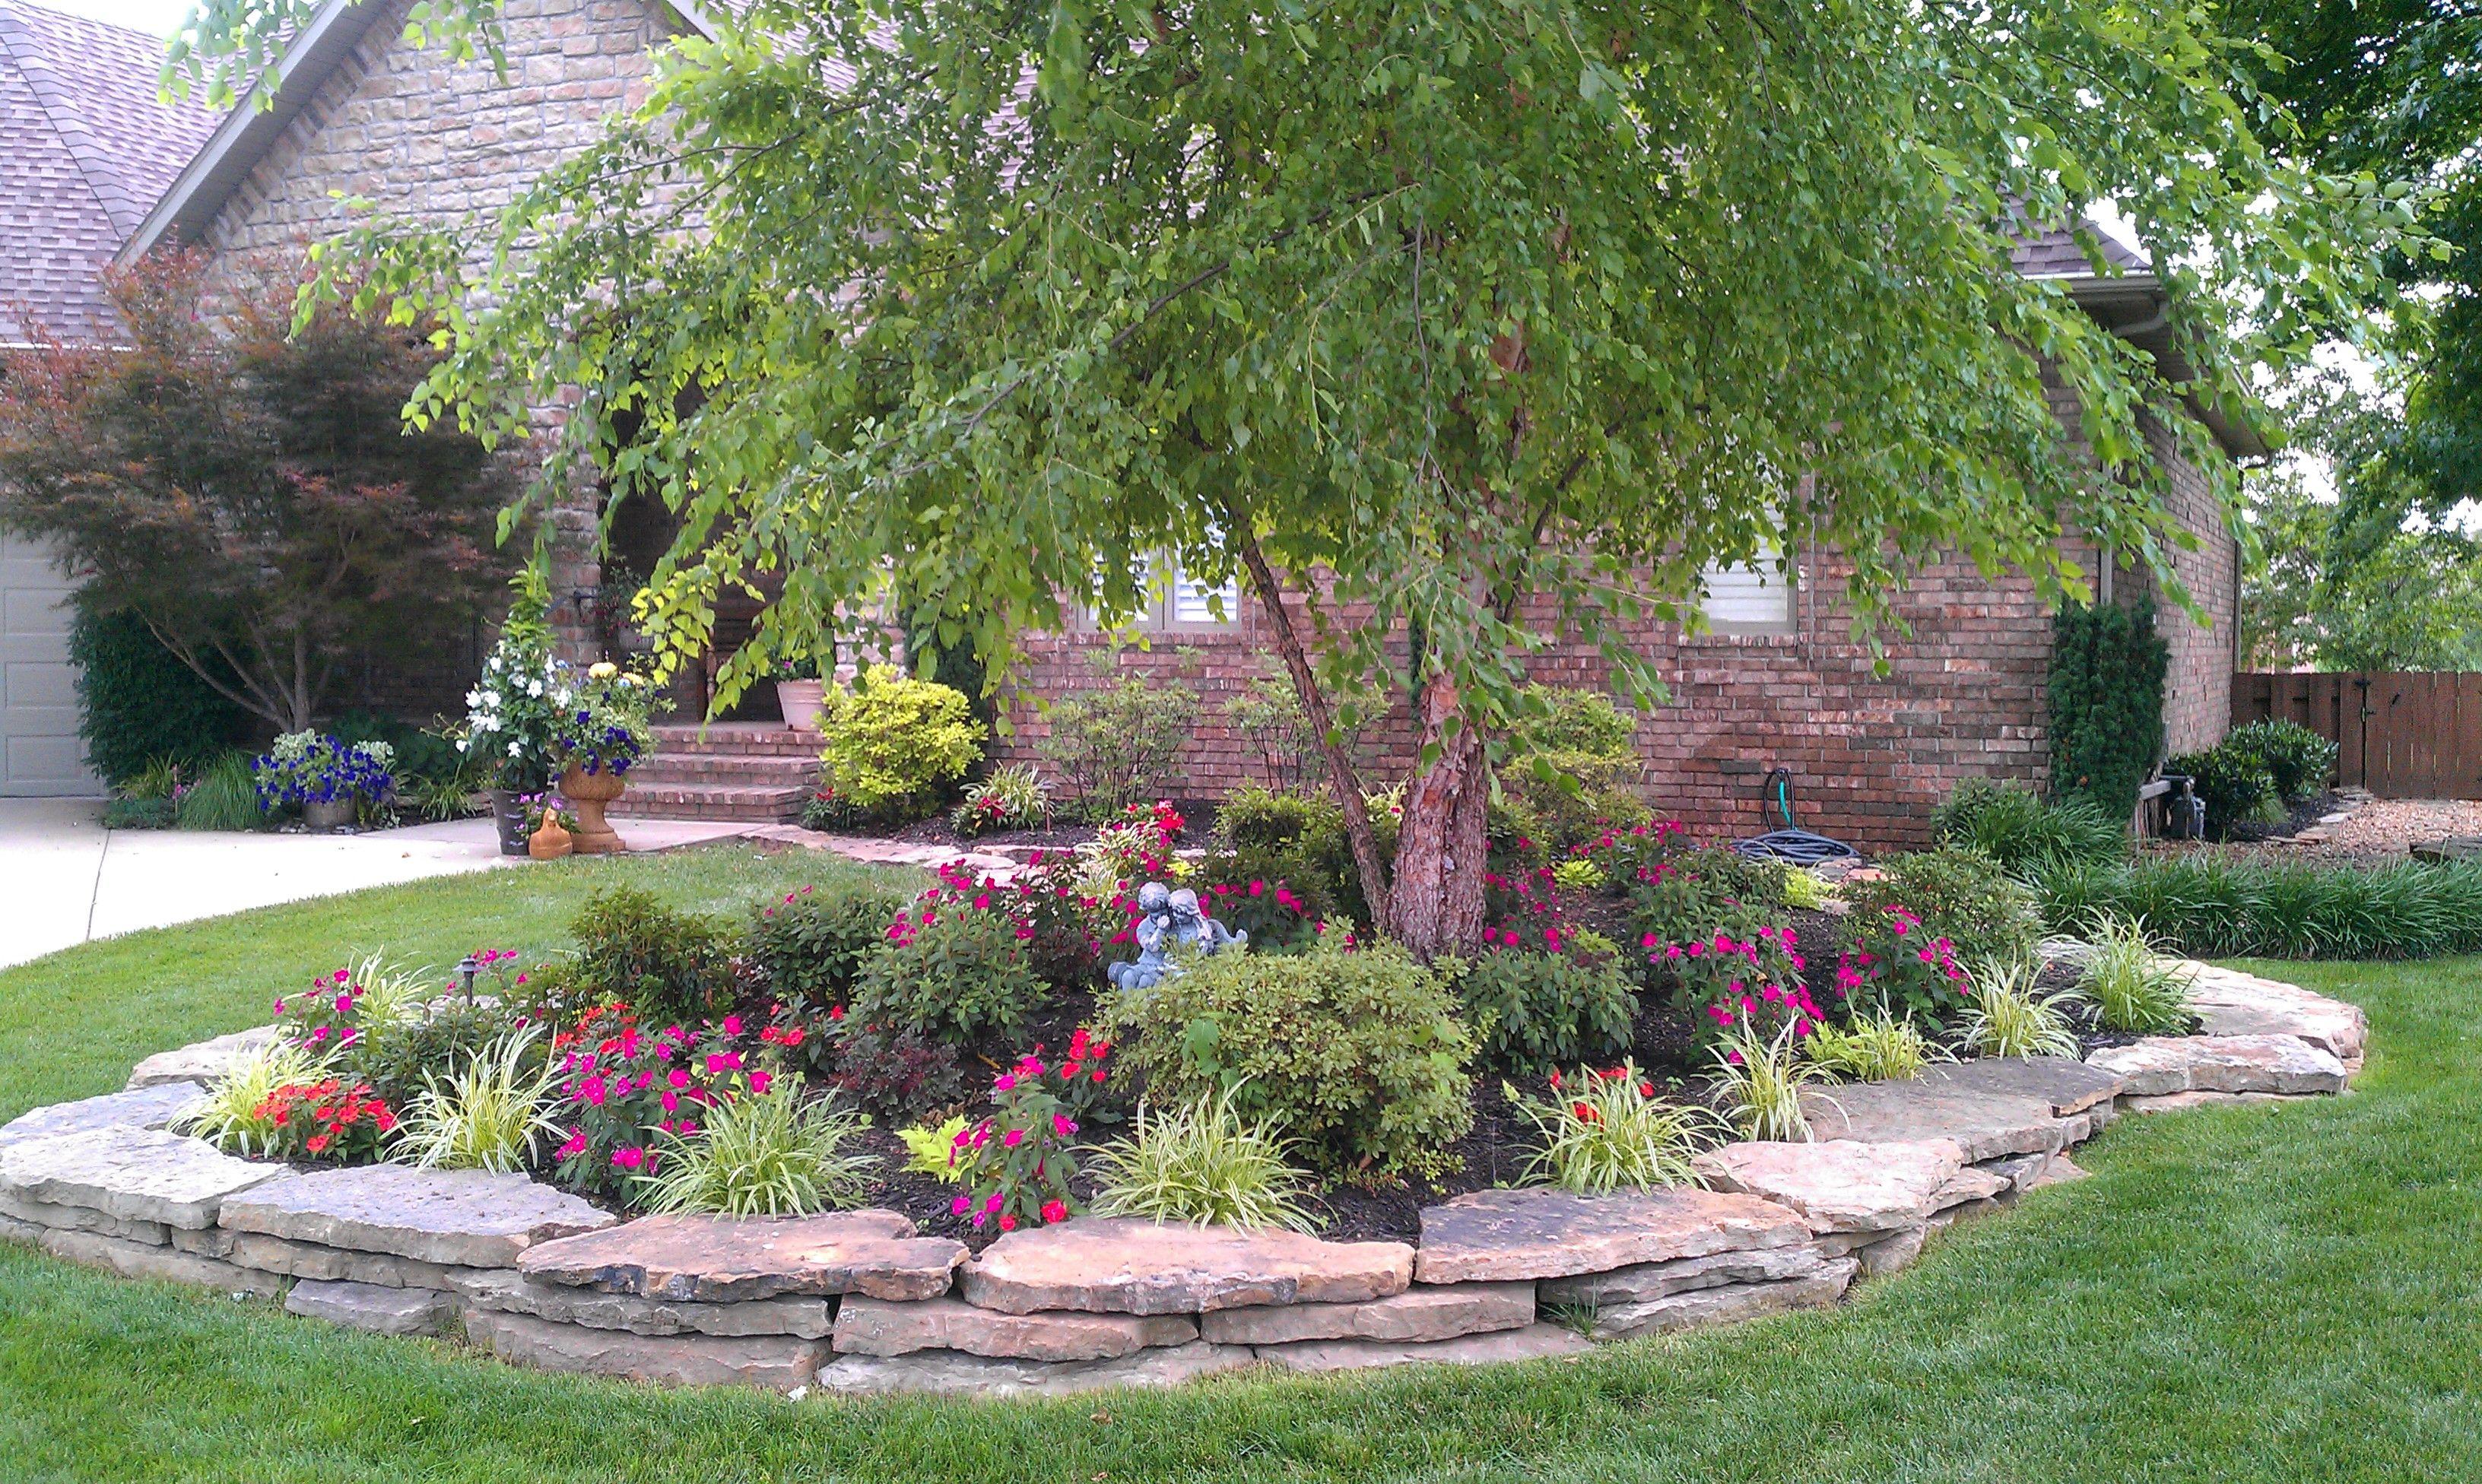 diy landscape design for beginners - Residential Landscape Design Ideas